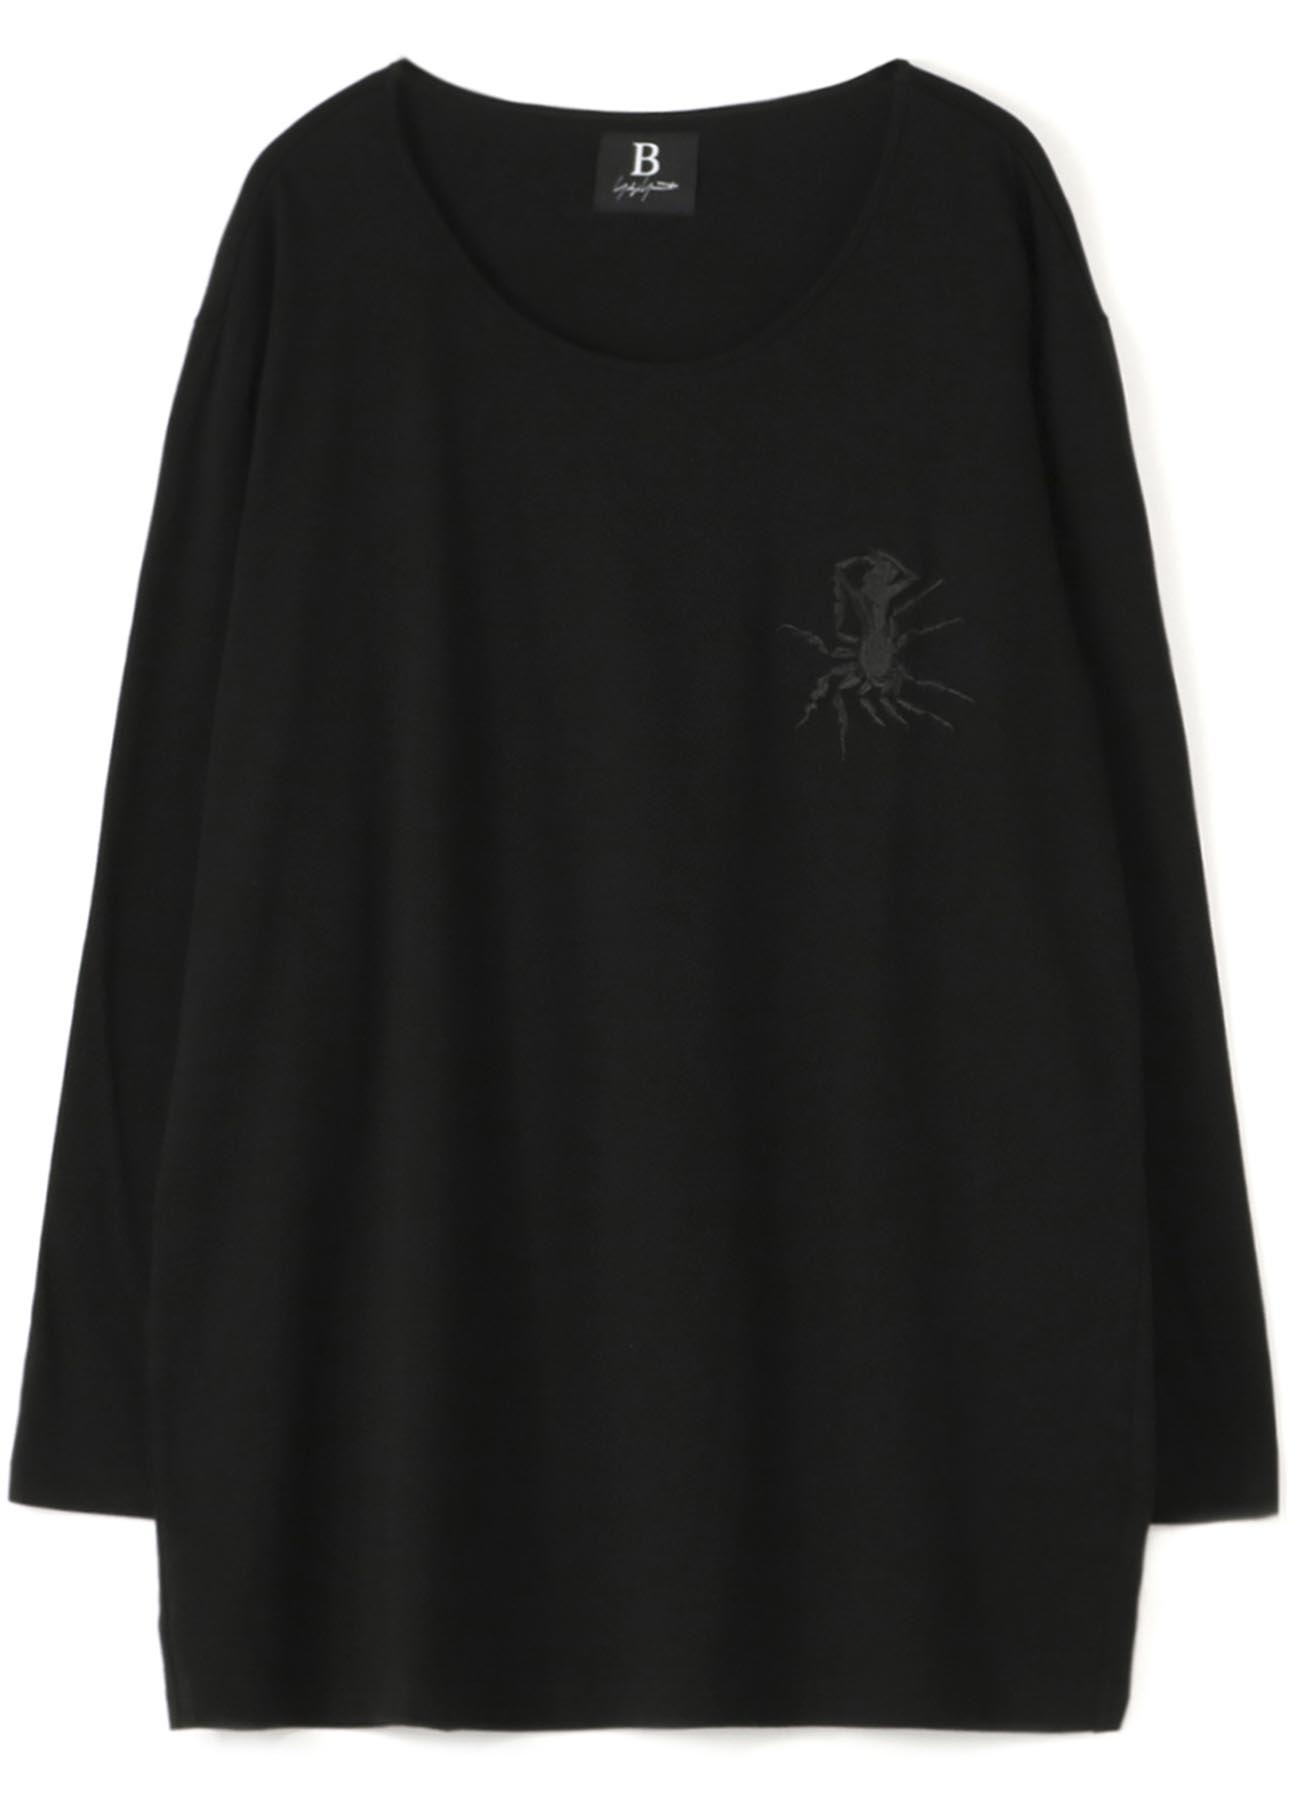 B/Cotton Embroidery L/S Tee